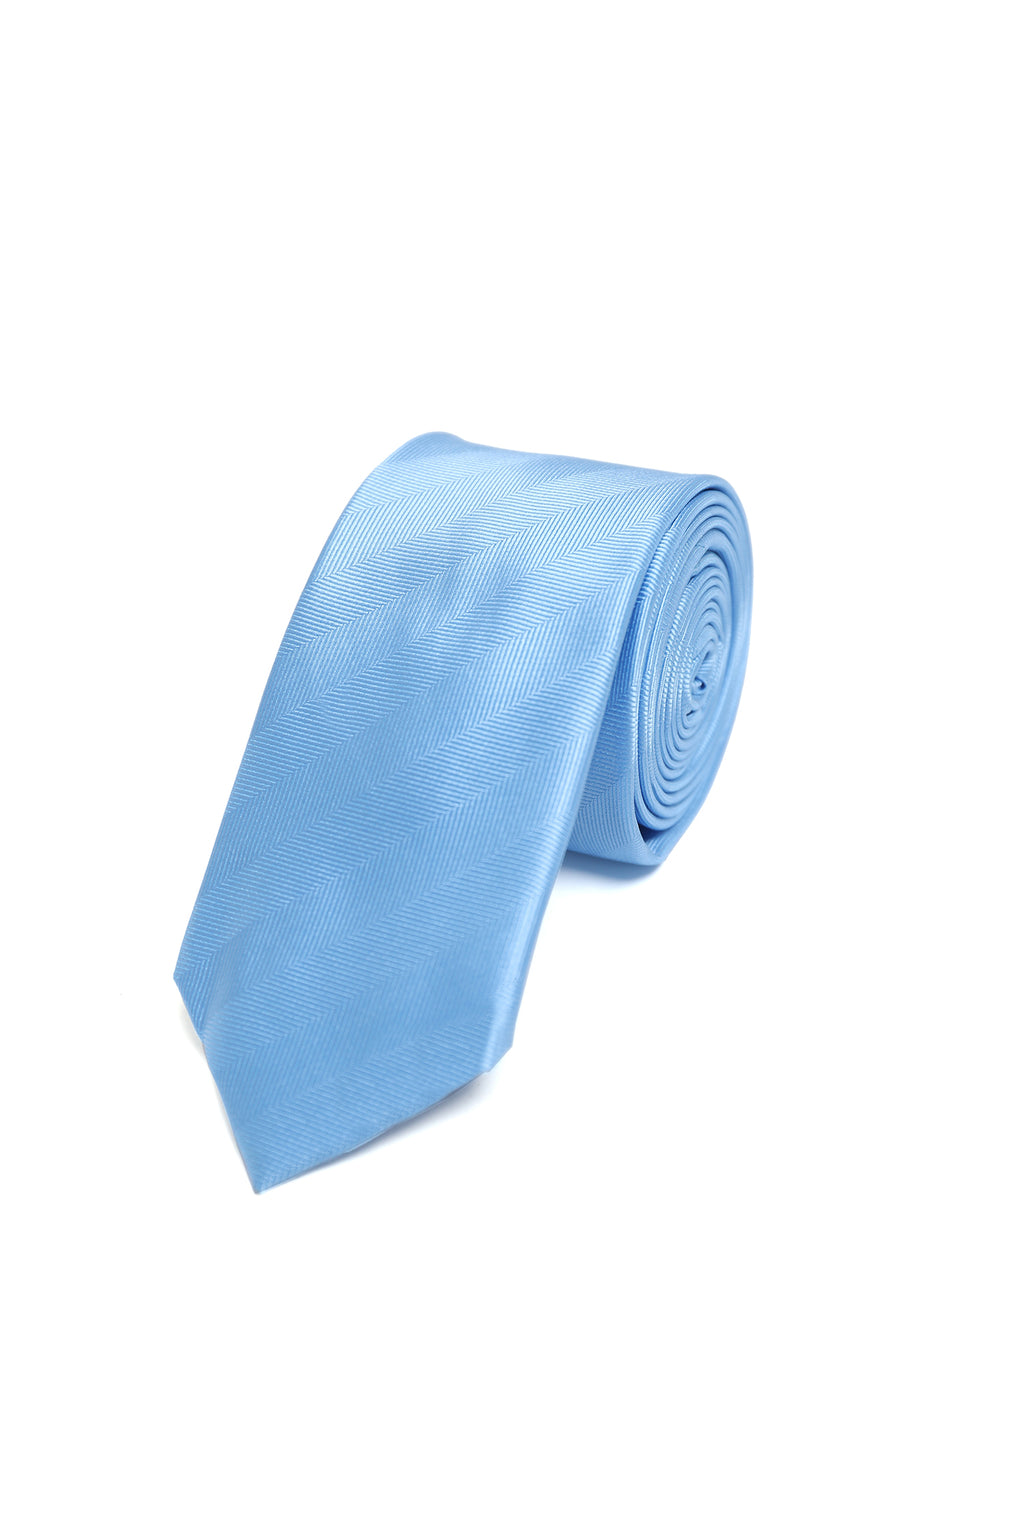 TWILL TEXTURED TIE-LIGHT-BLUE